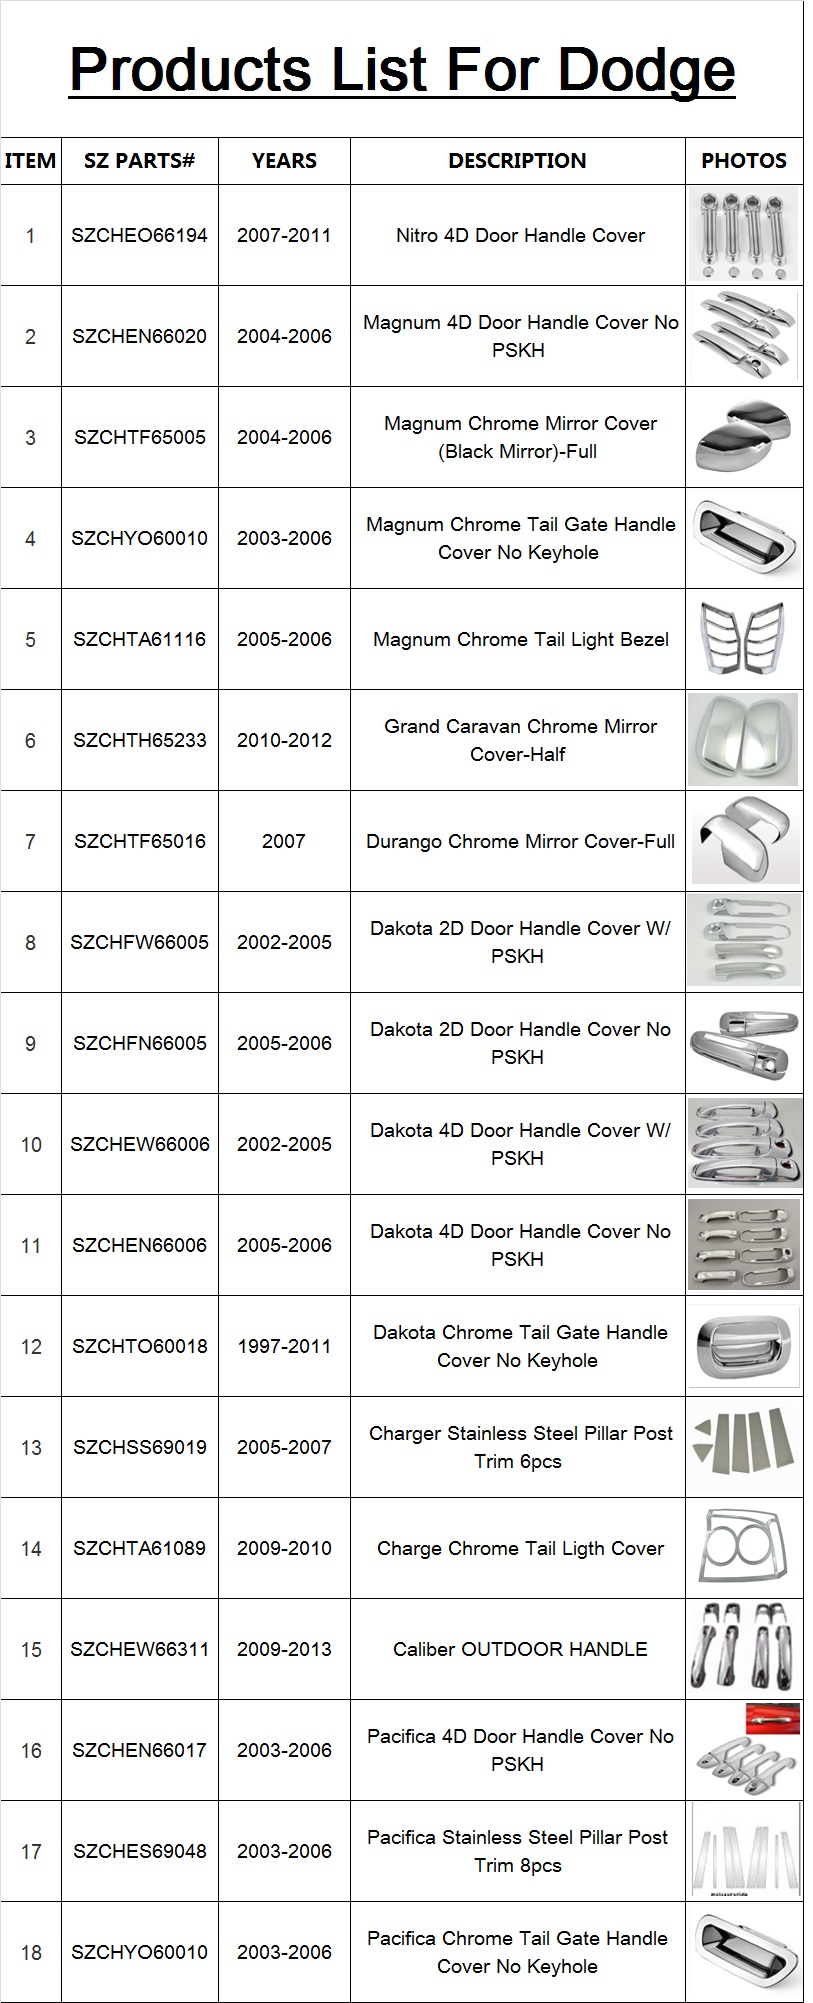 Dodge car tuning part 3 - Car Tuning Auto Parts For Dodge Charger 2006 2010 Nitro 2007 2011